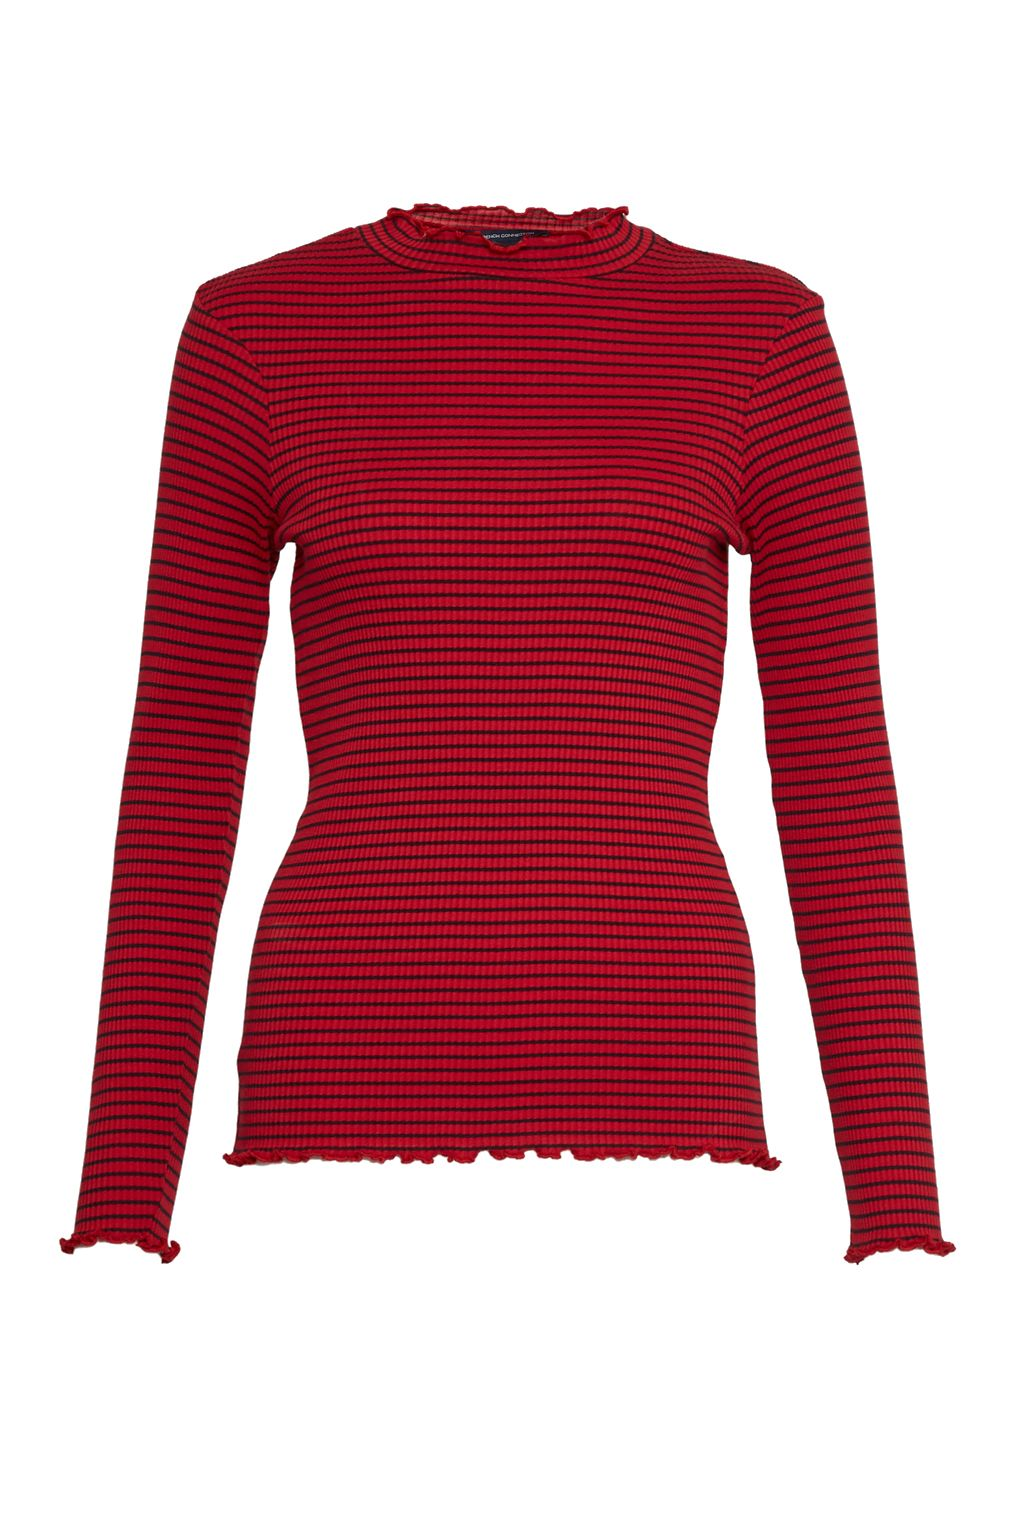 French Connection Tim Tim Ribbed Striped Top, Red